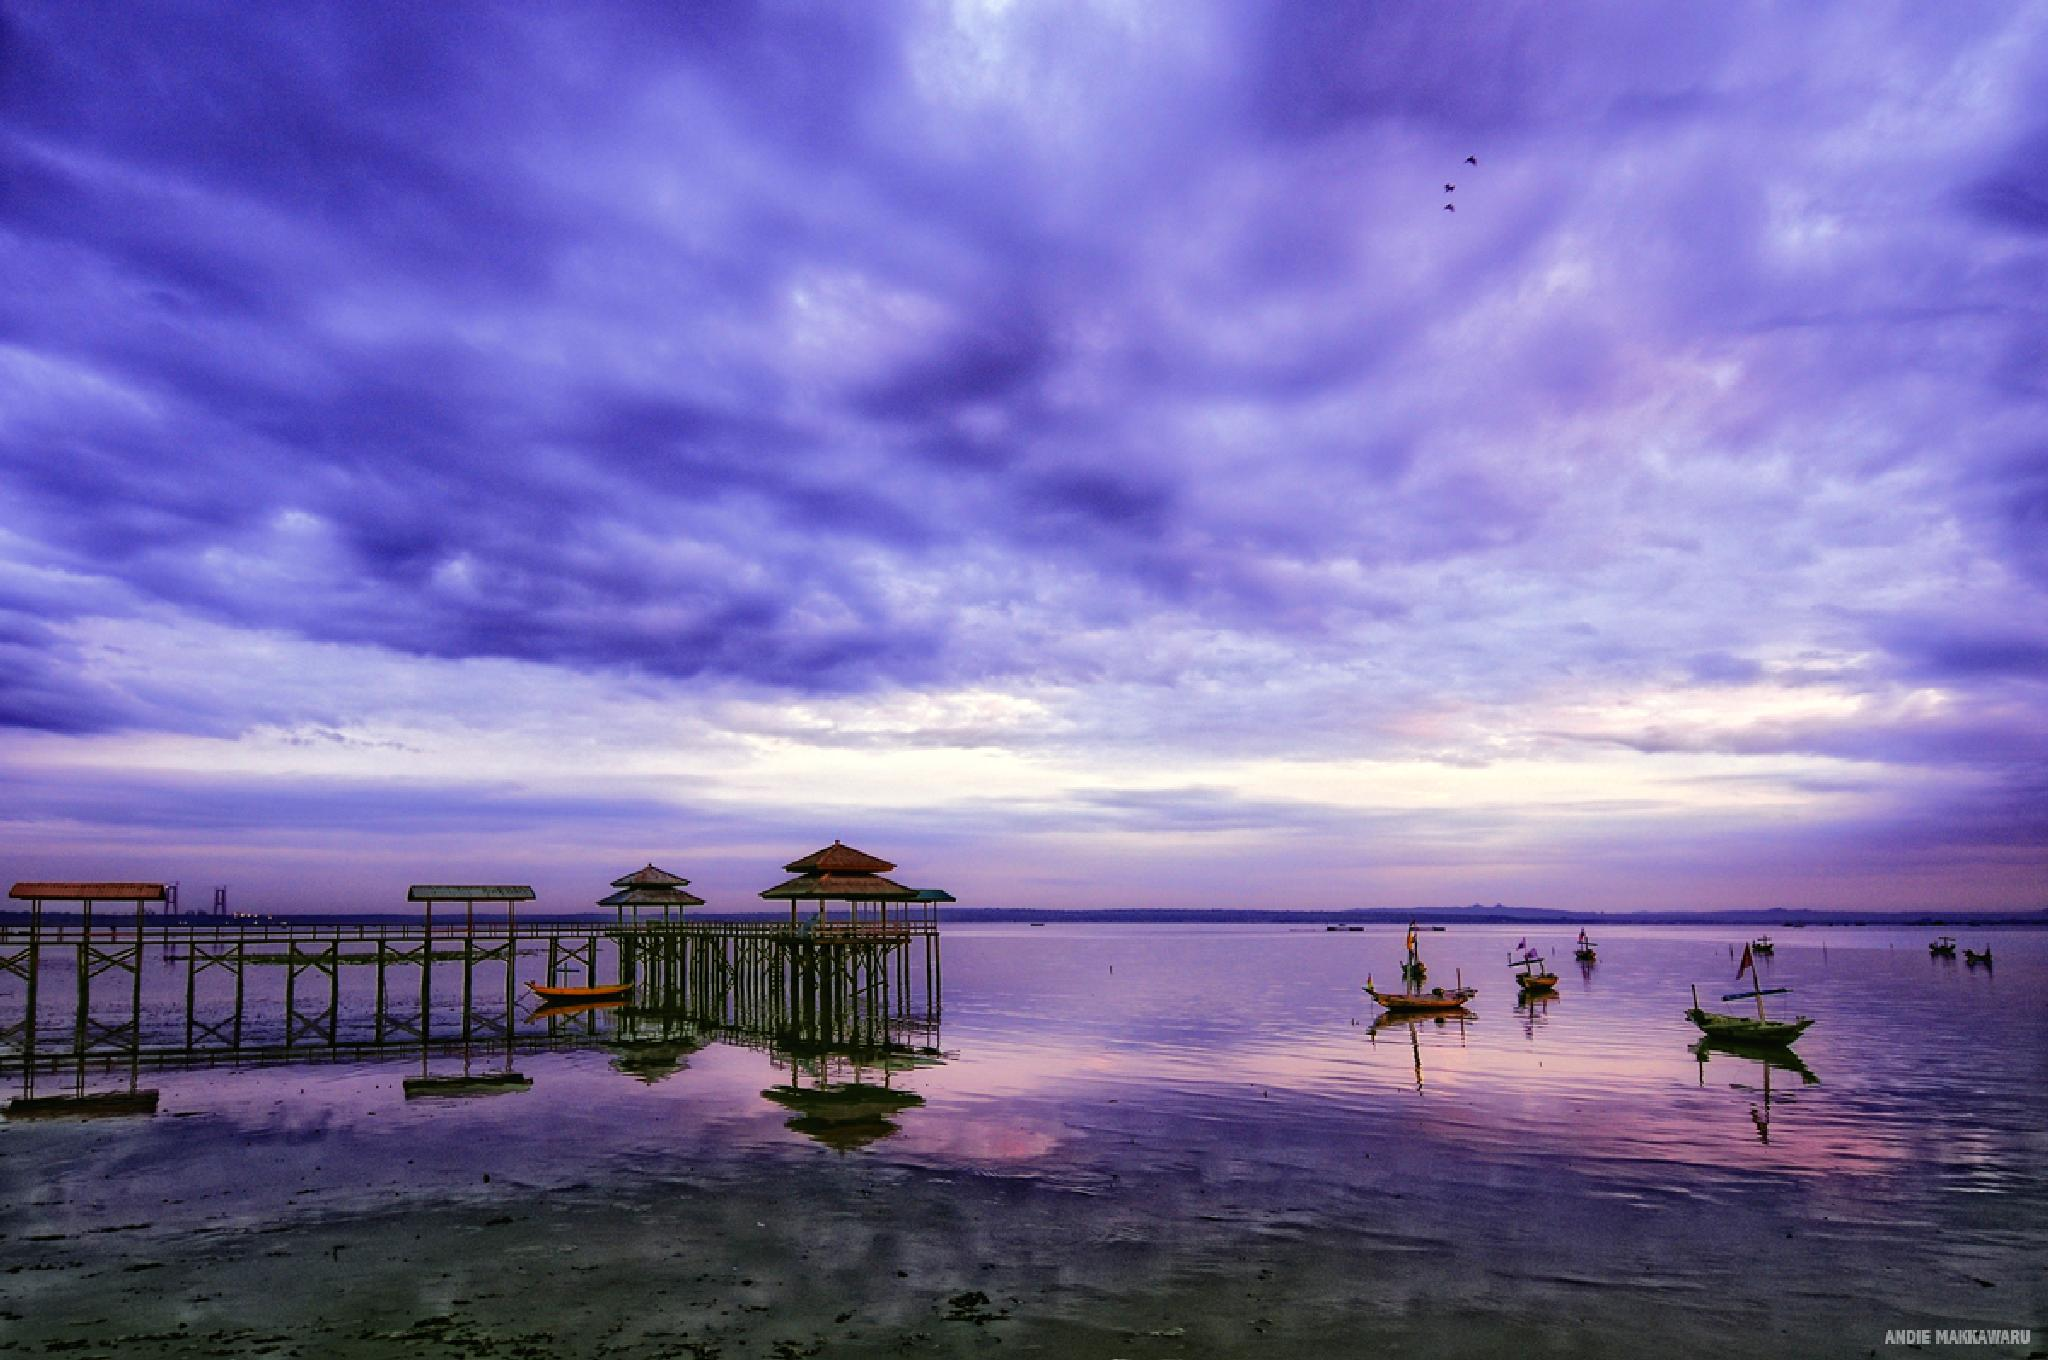 Photo in Landscape #seascape #waterscape #landscape #nature #indonesia #beach #andiemakkawaru